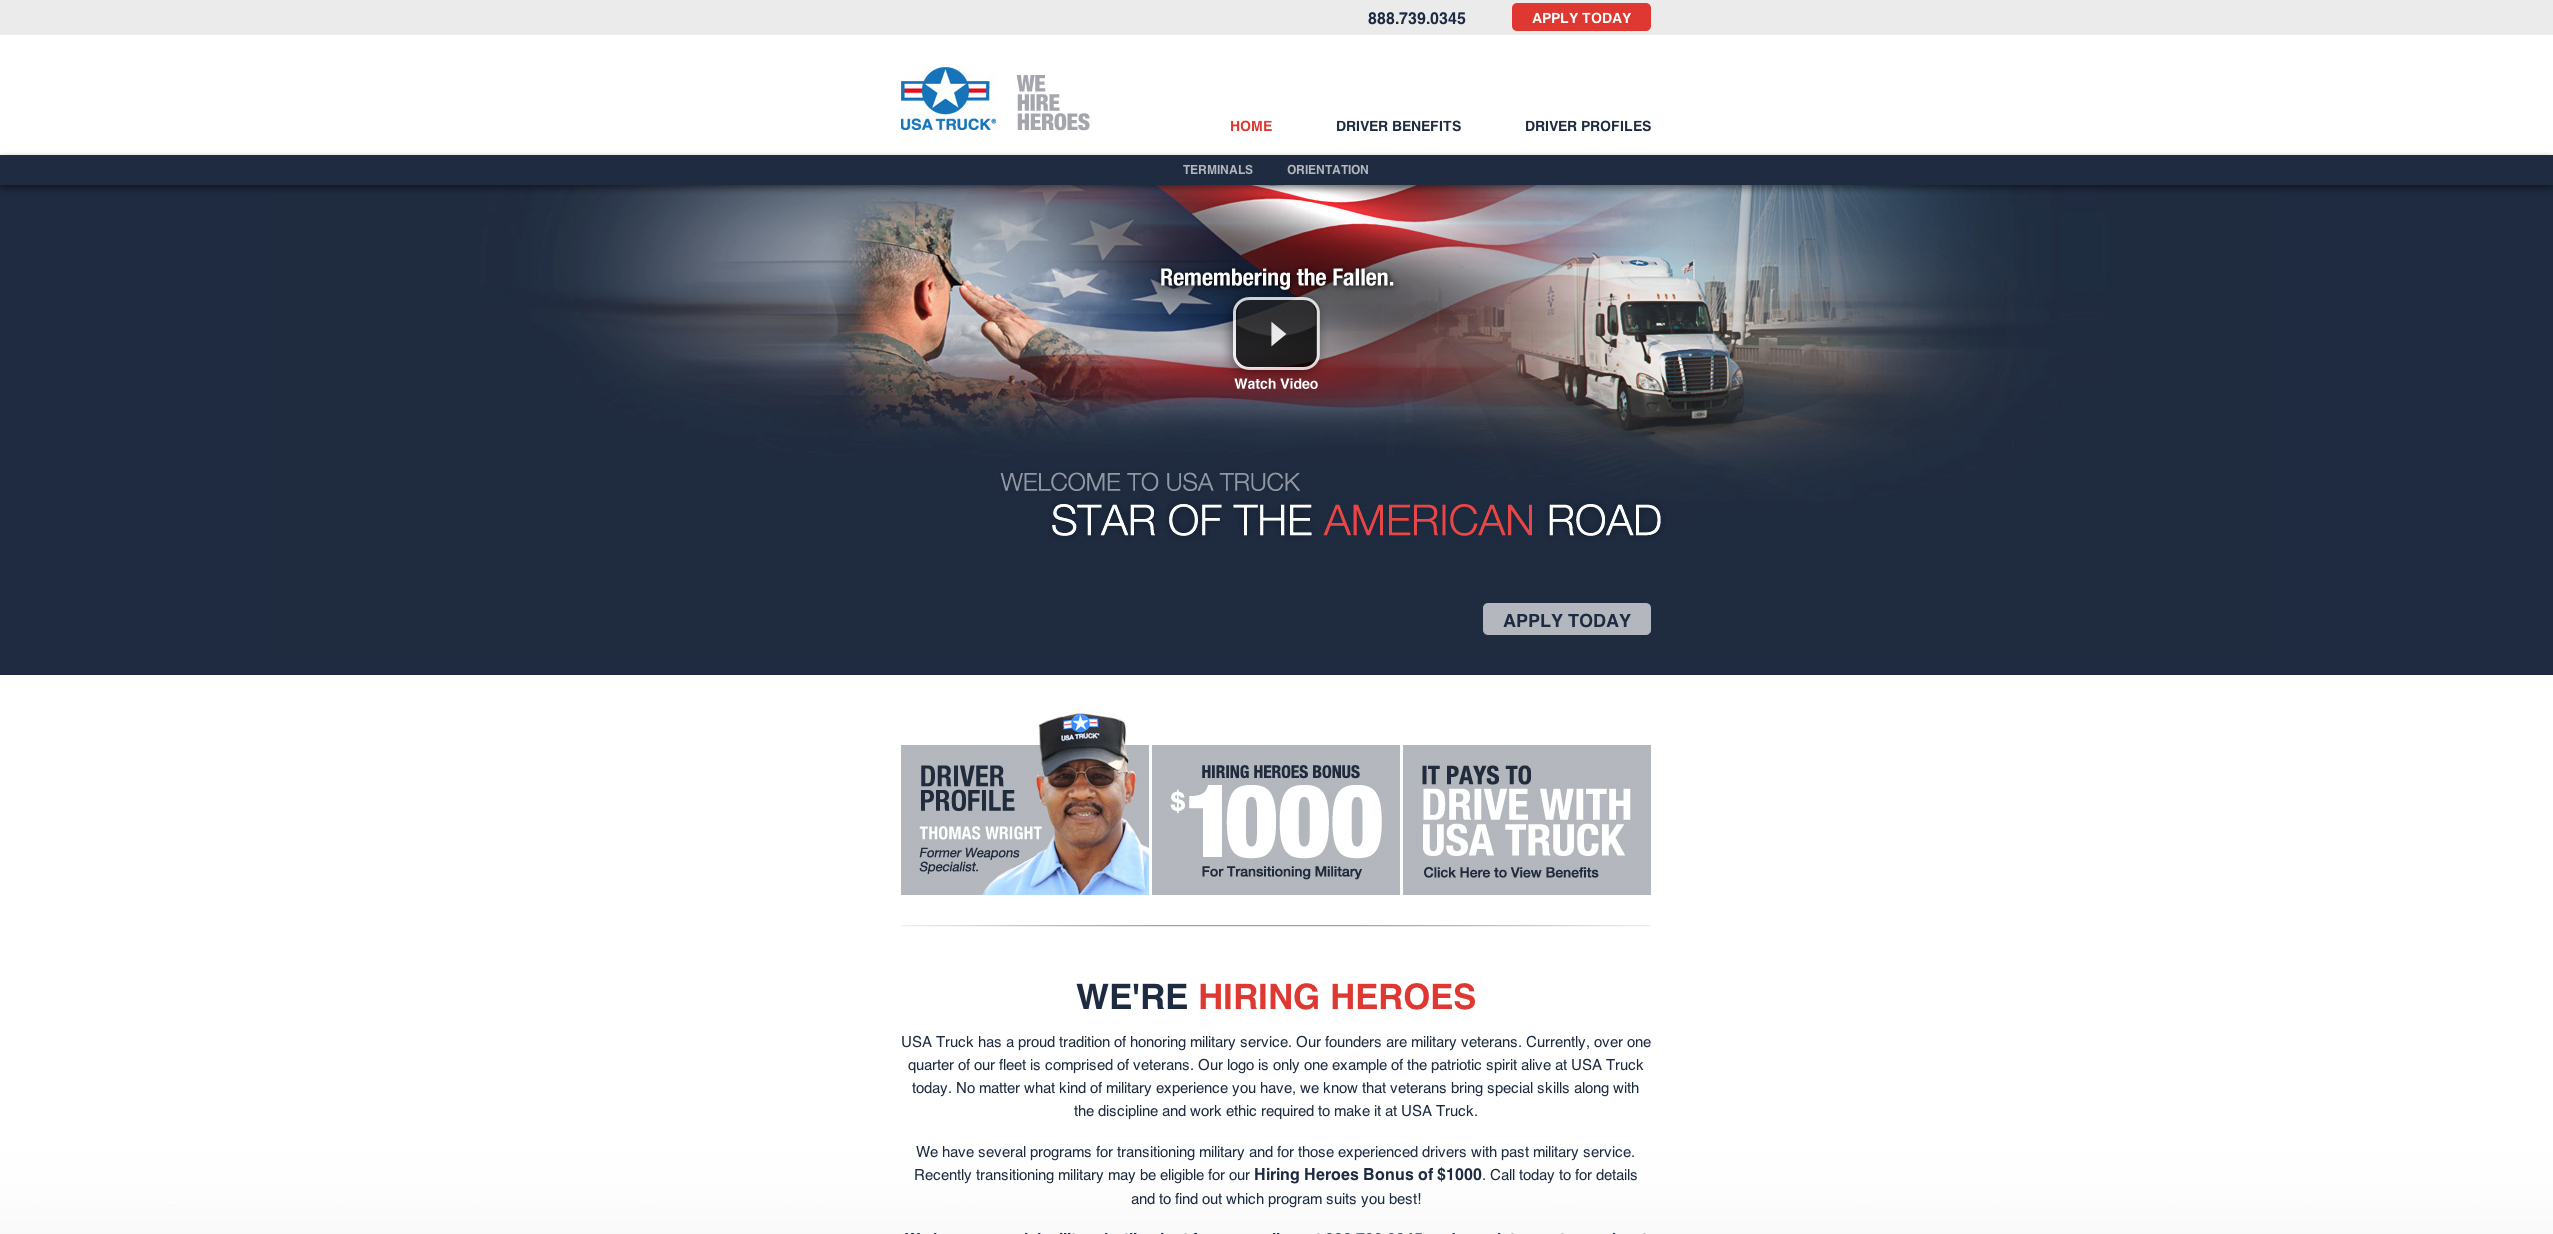 USA Truck Unveils Website For Veterans